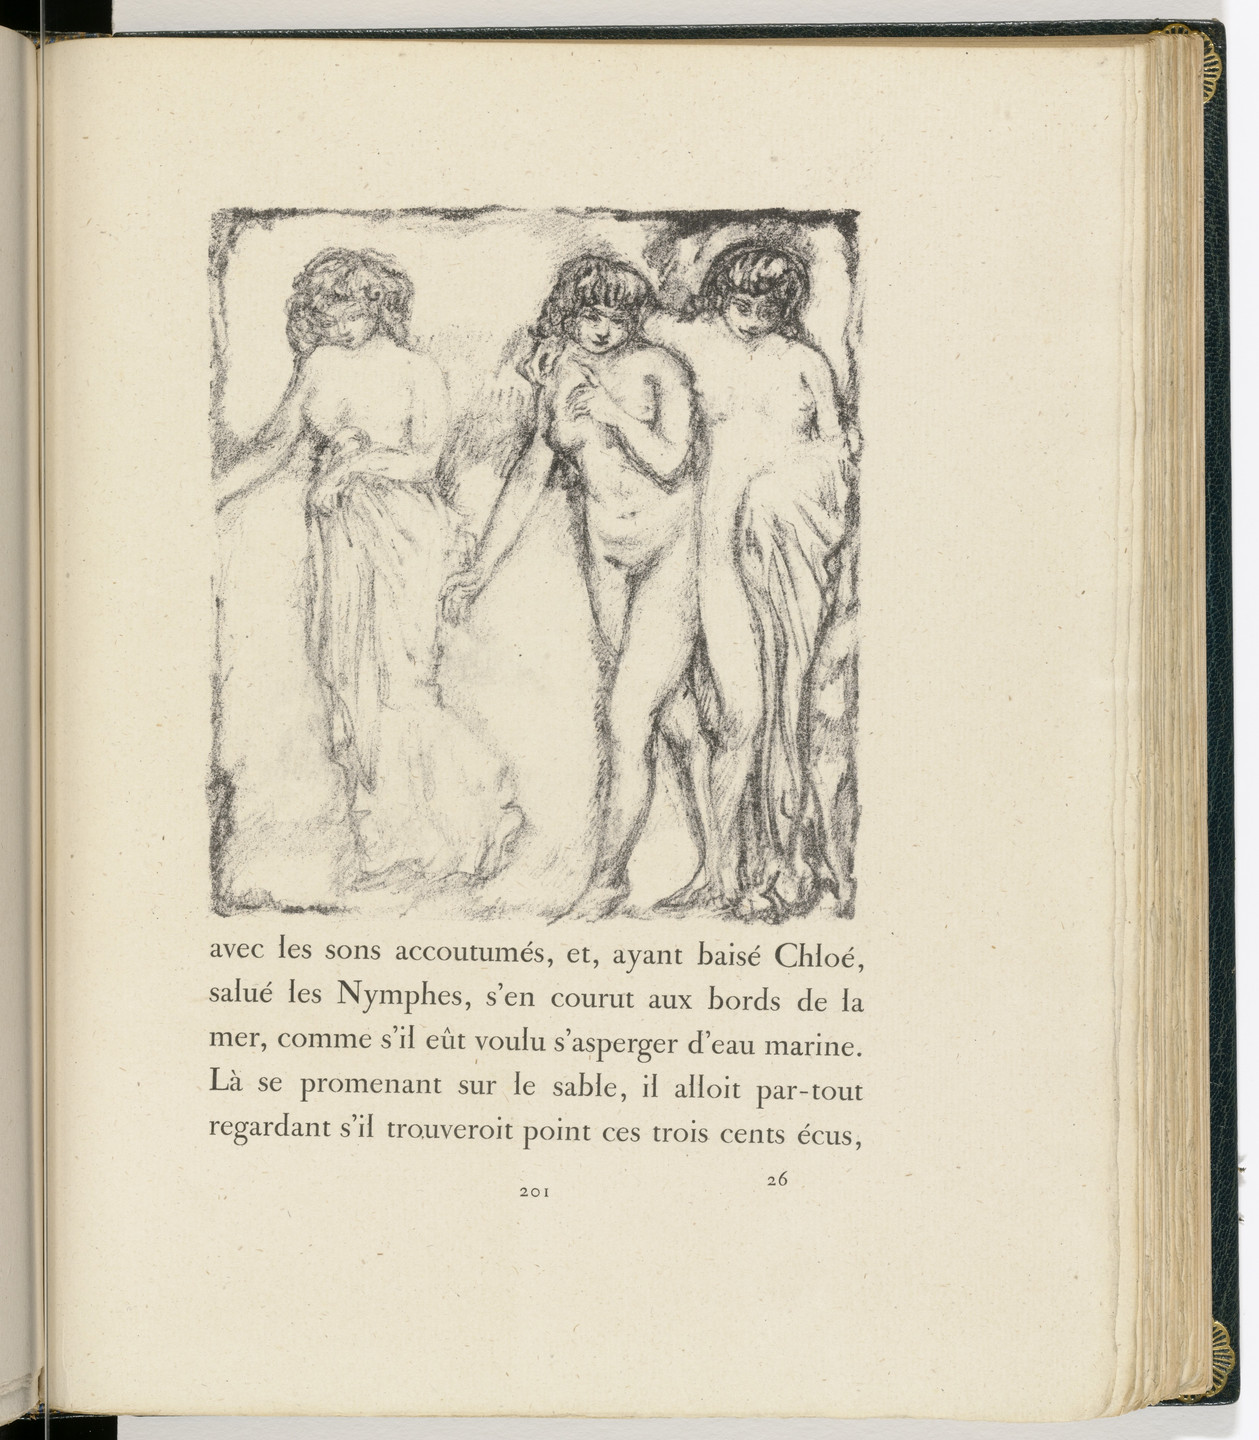 Pierre Bonnard. In-text plate (page 201) from Daphnis et Chloé. 1902